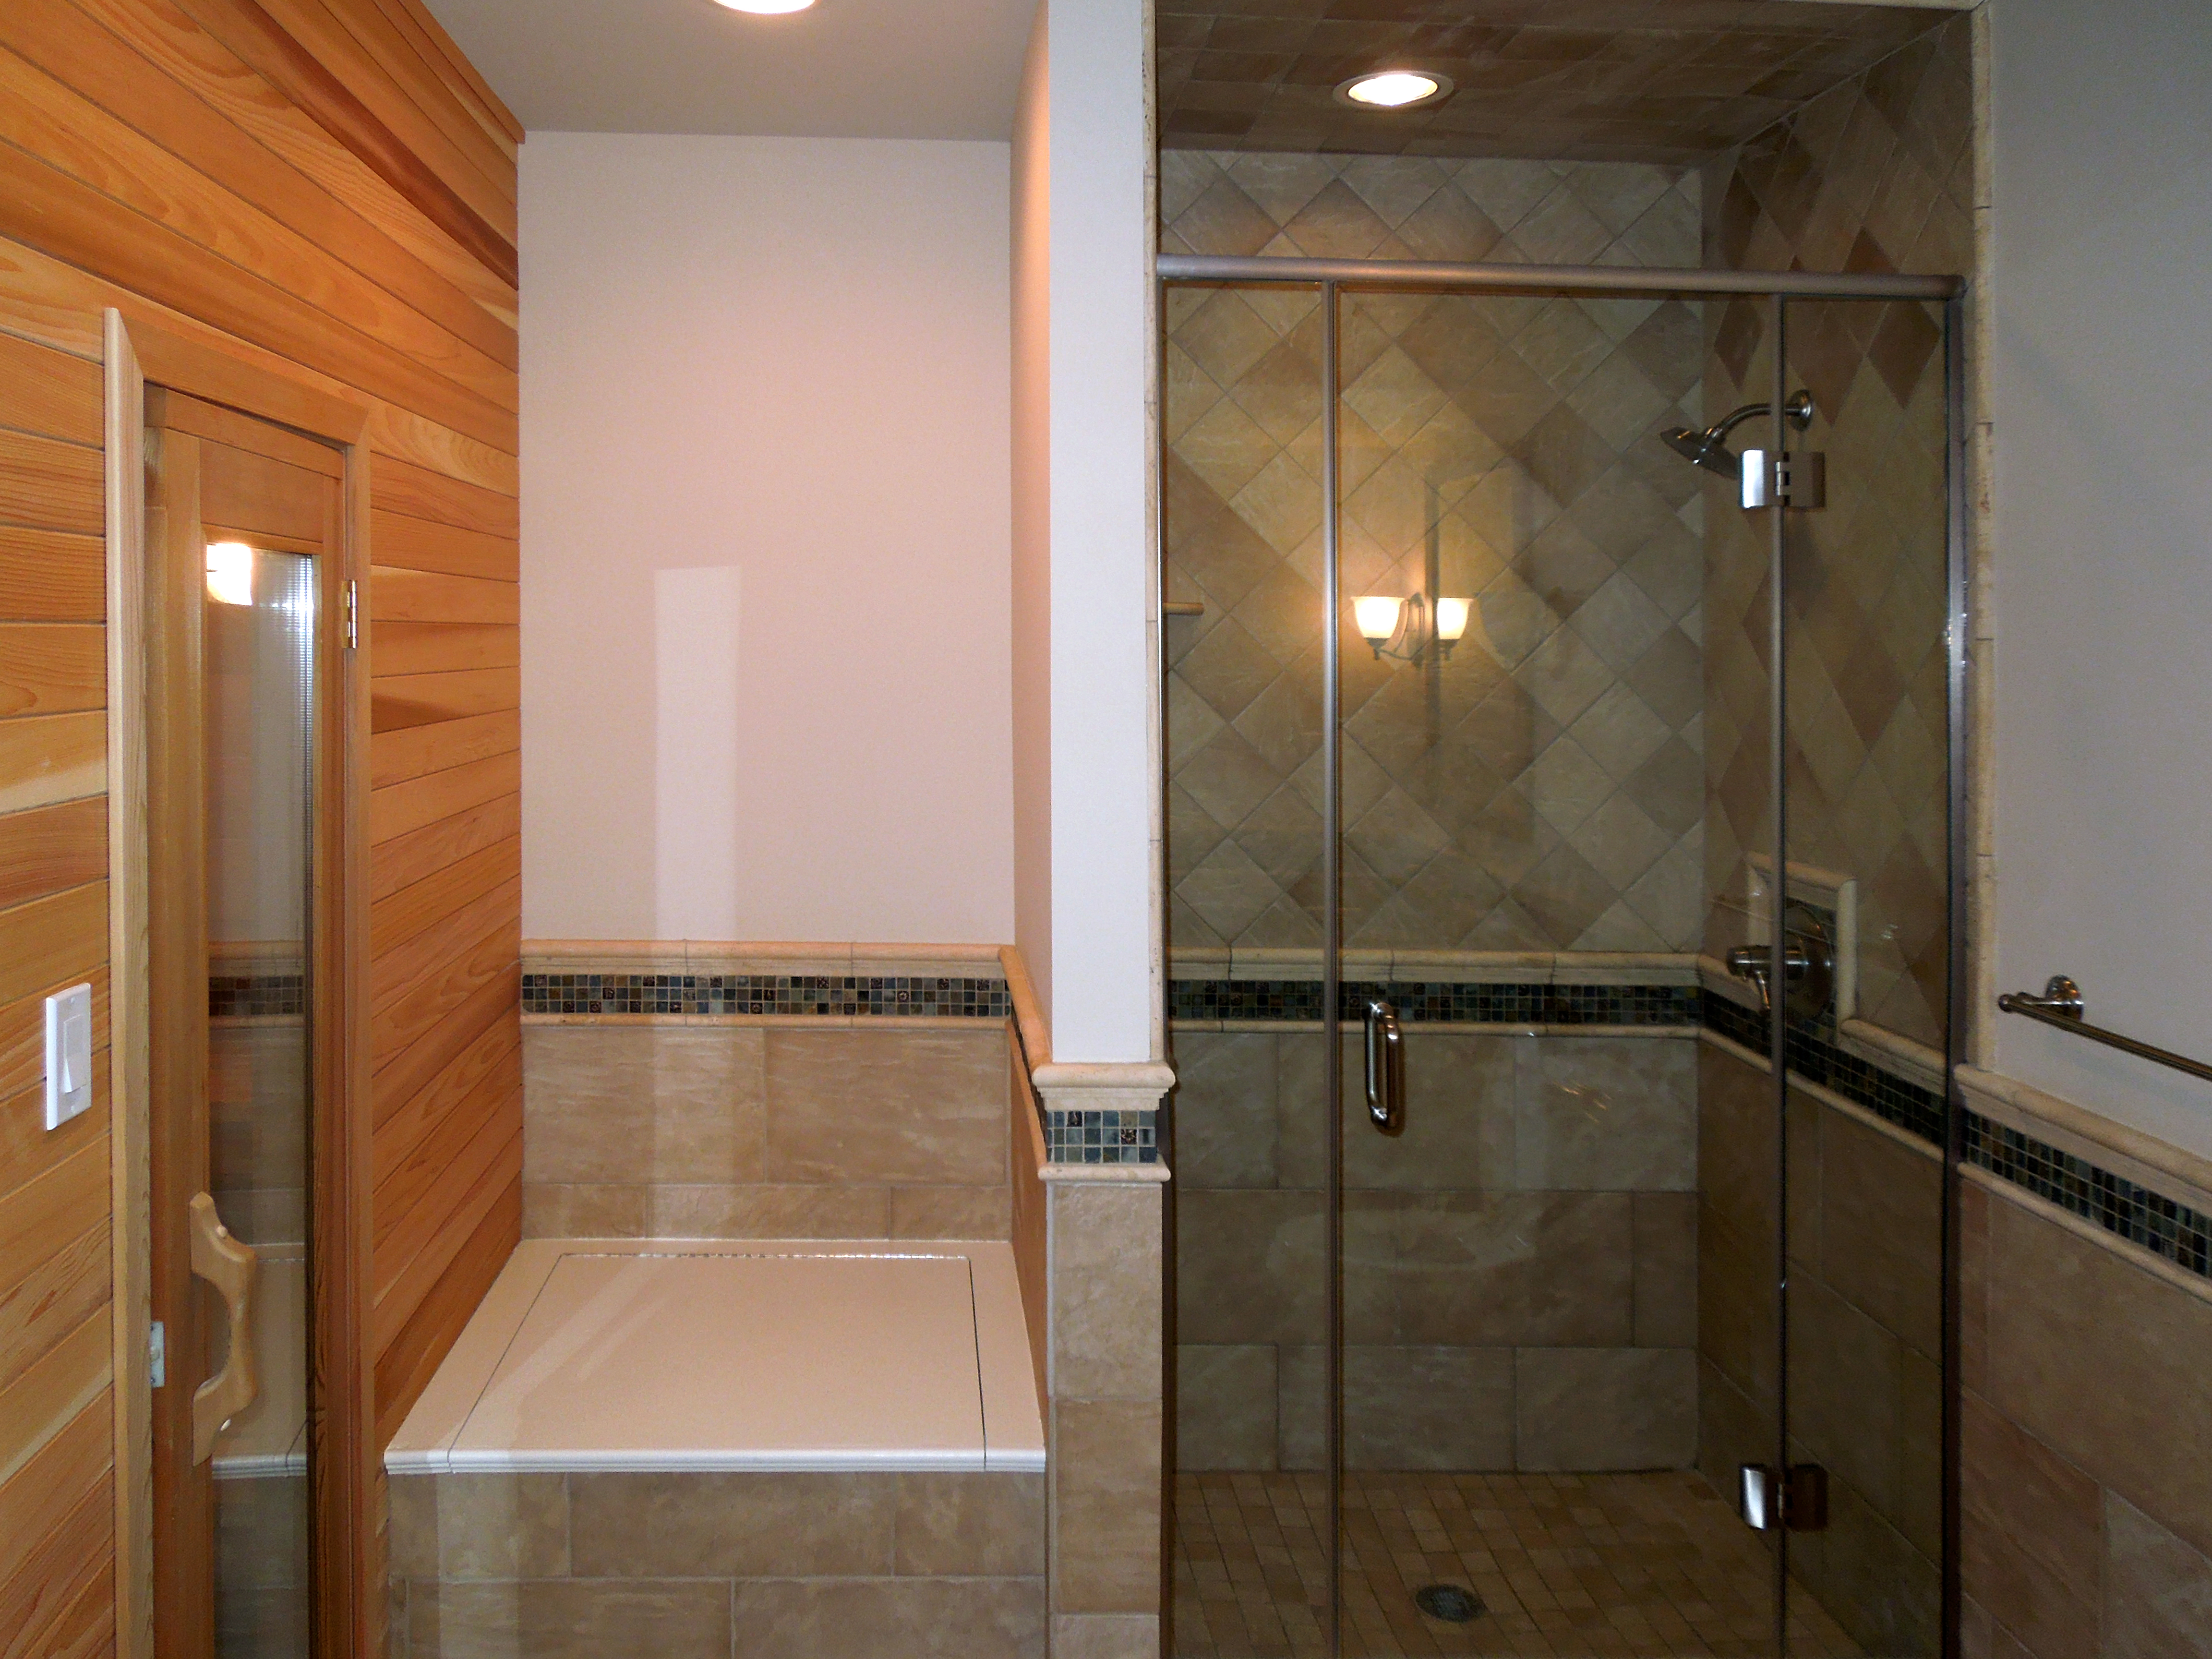 13 - Frameless shower door